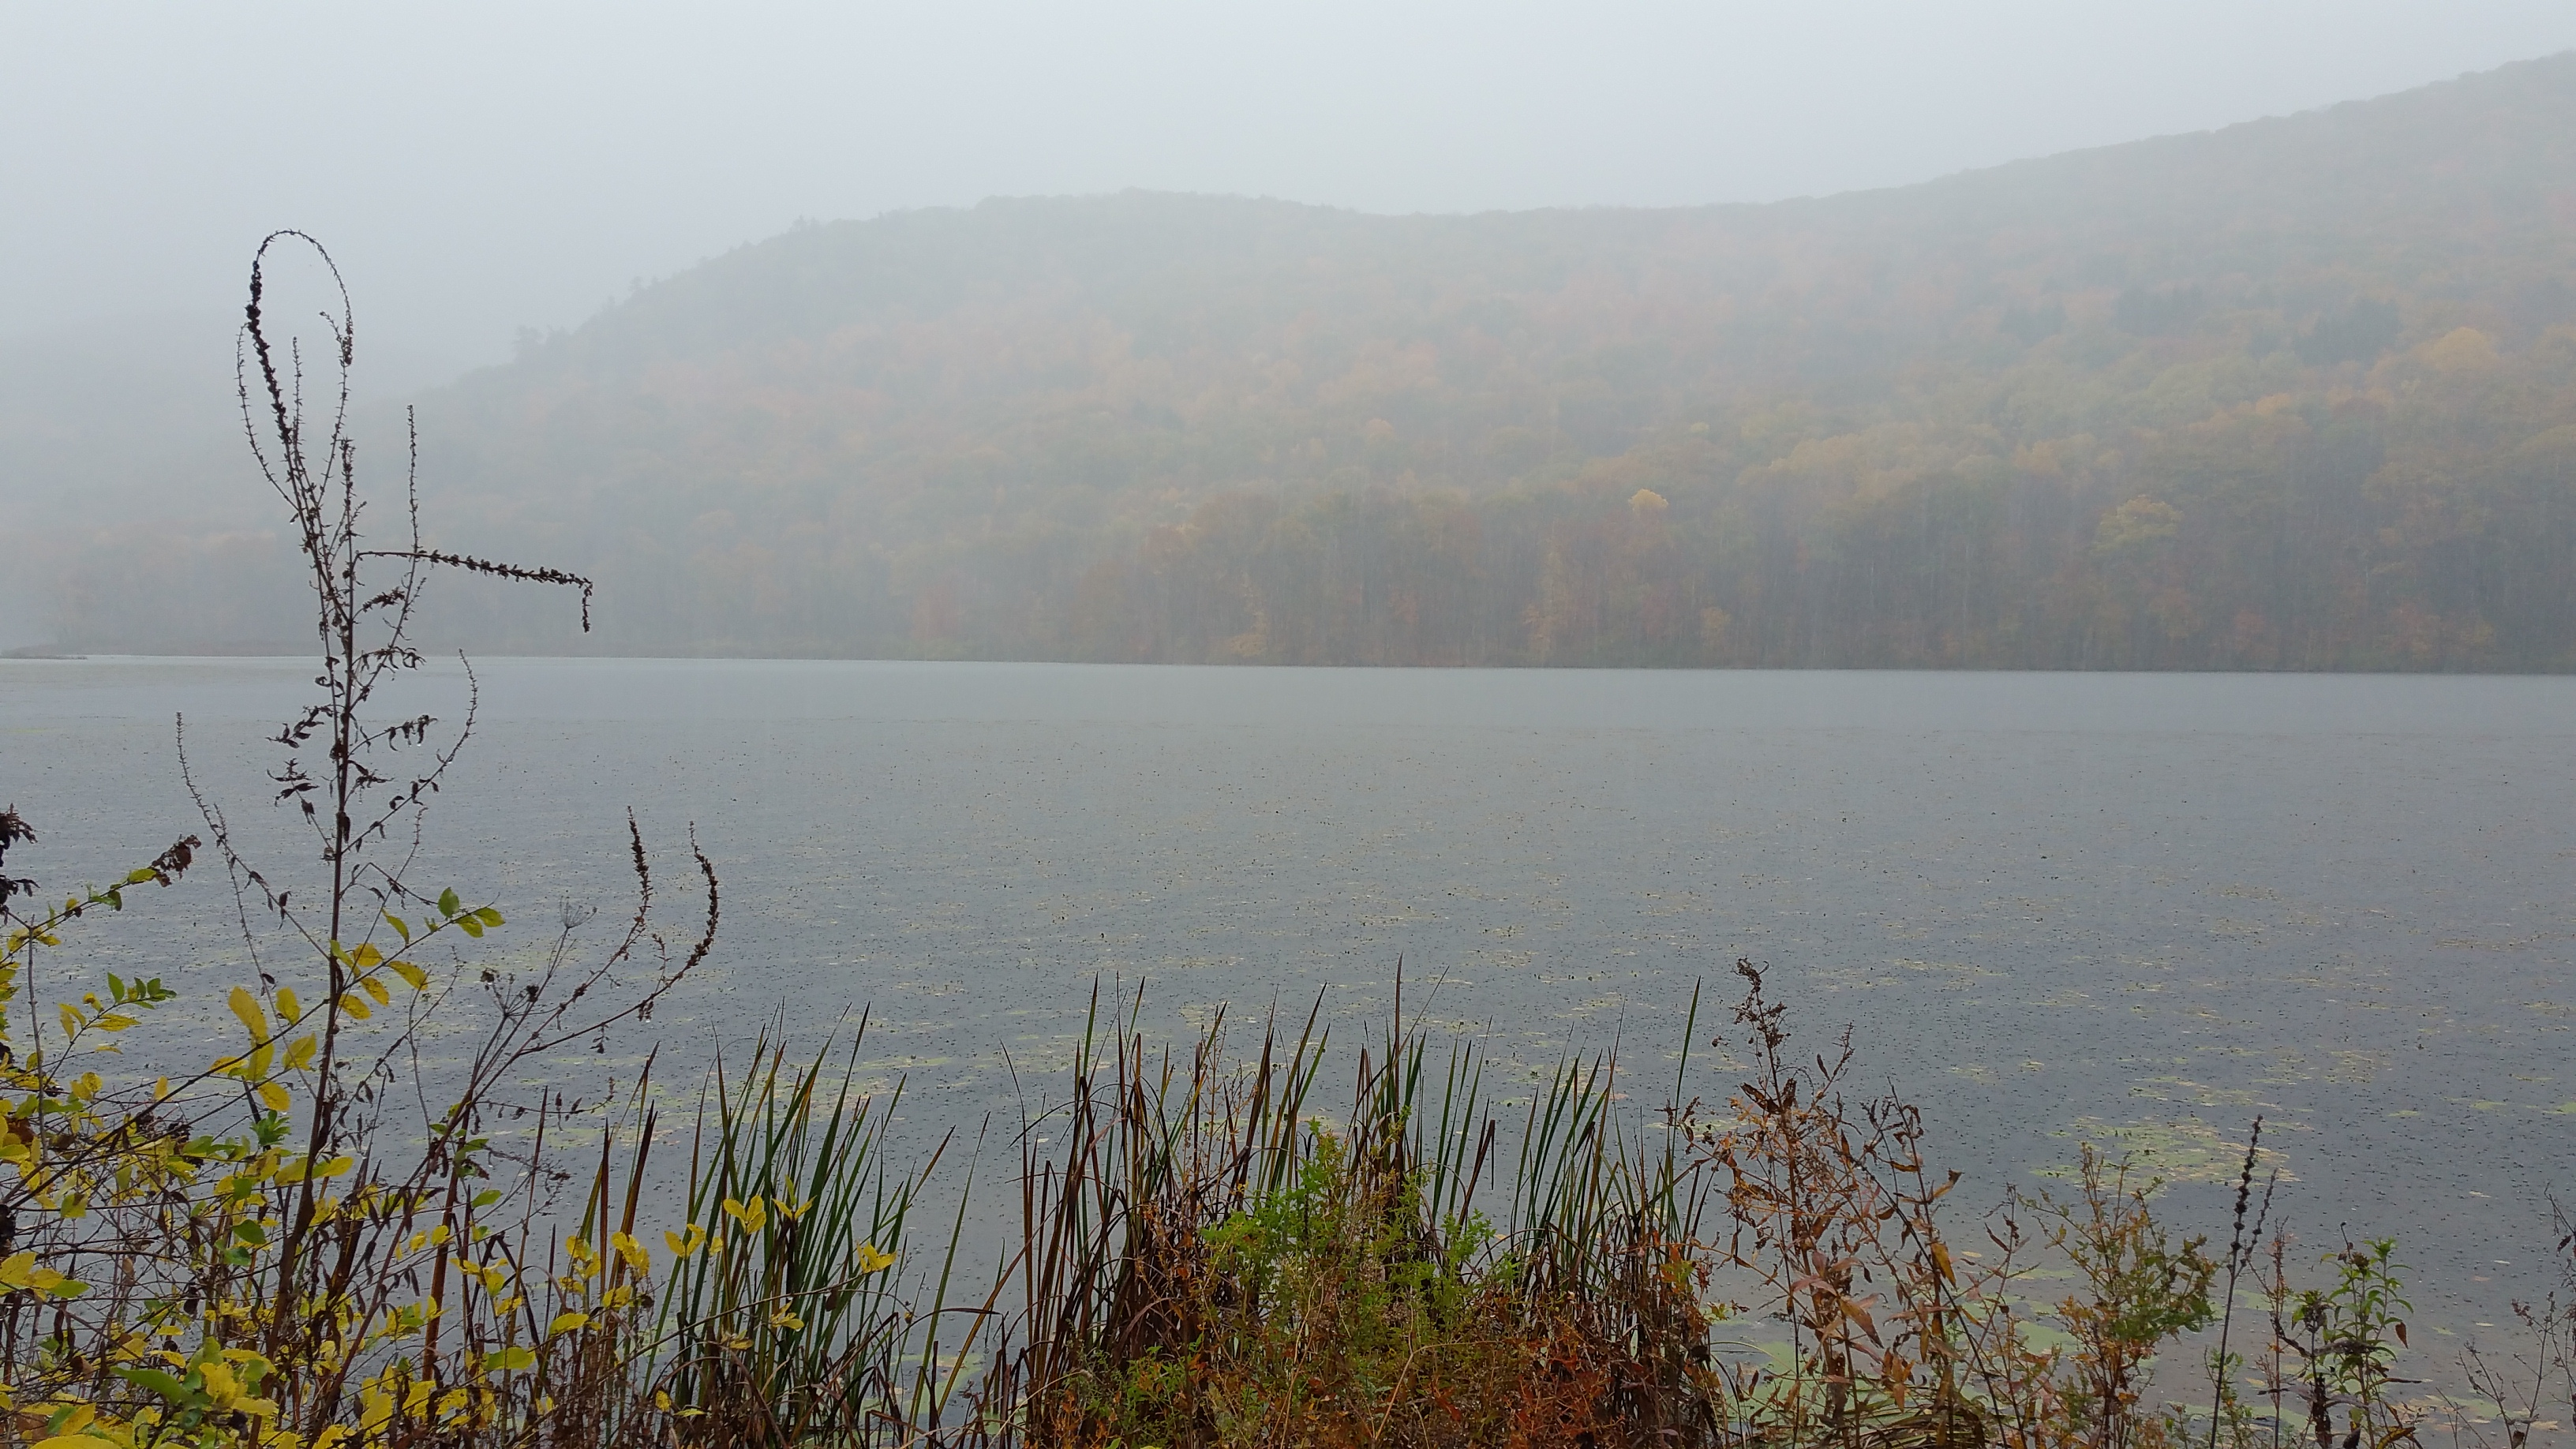 Sweep it Under the River: Berkshire County's Battle with GE Over the Housatonic River Cleanup Continues